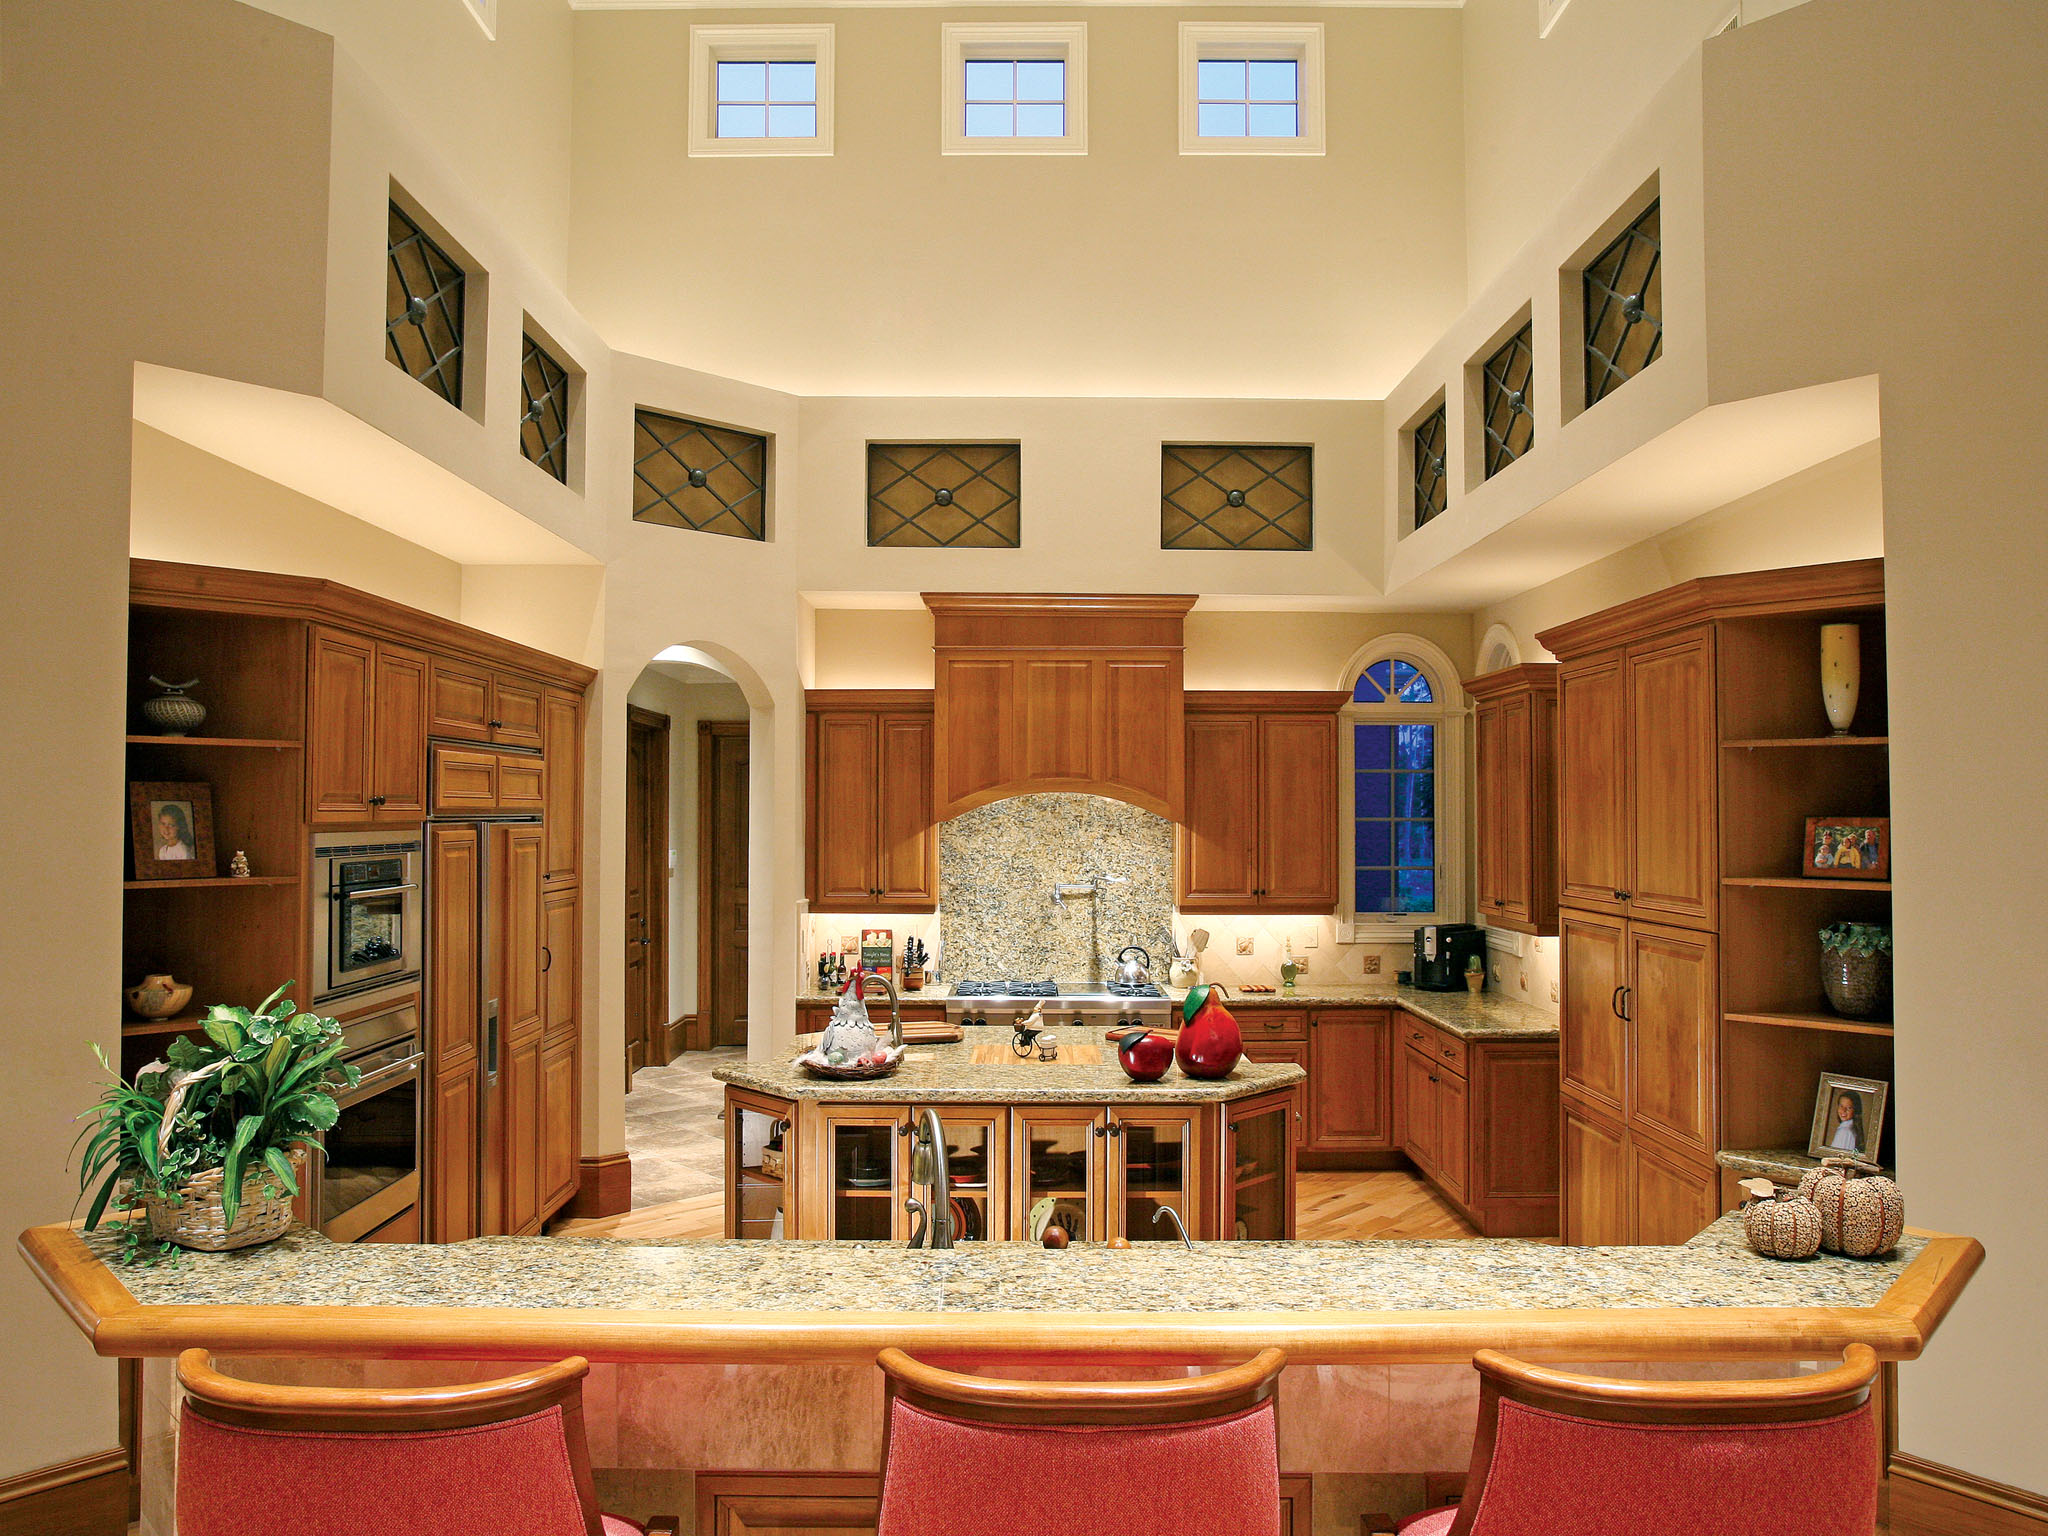 Mediterranean frankfort kitchen remodel halo for House kitchen model